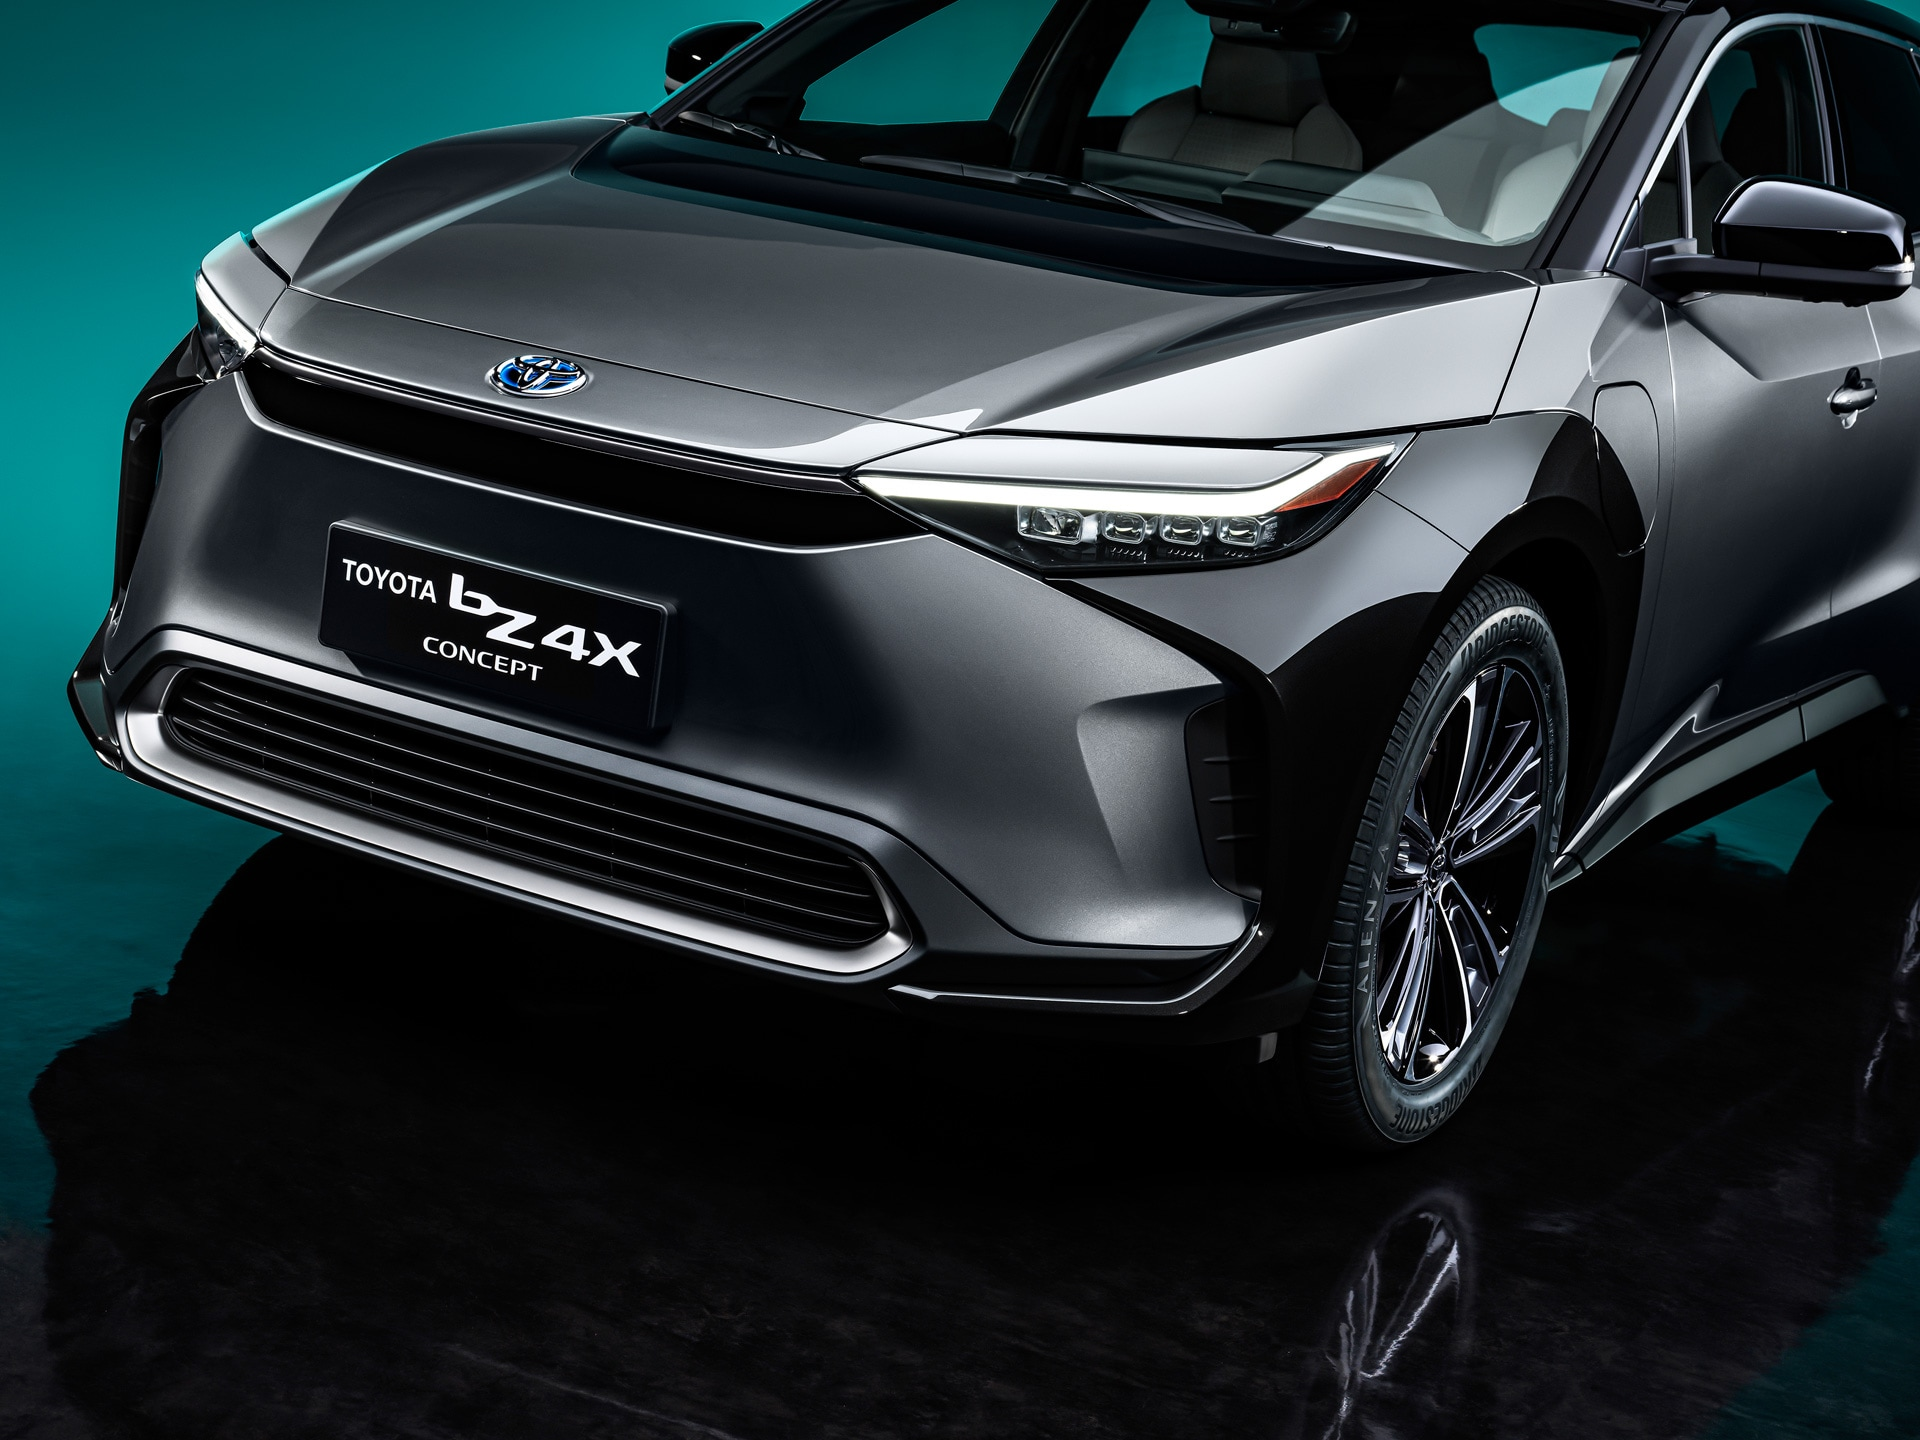 The car gets a sharp and bold looking front profile with multi-lamp LED headlamps, LED daytime running lights, a large air intake at the bottom. However, no conventional front grille is there considering it is an EV.